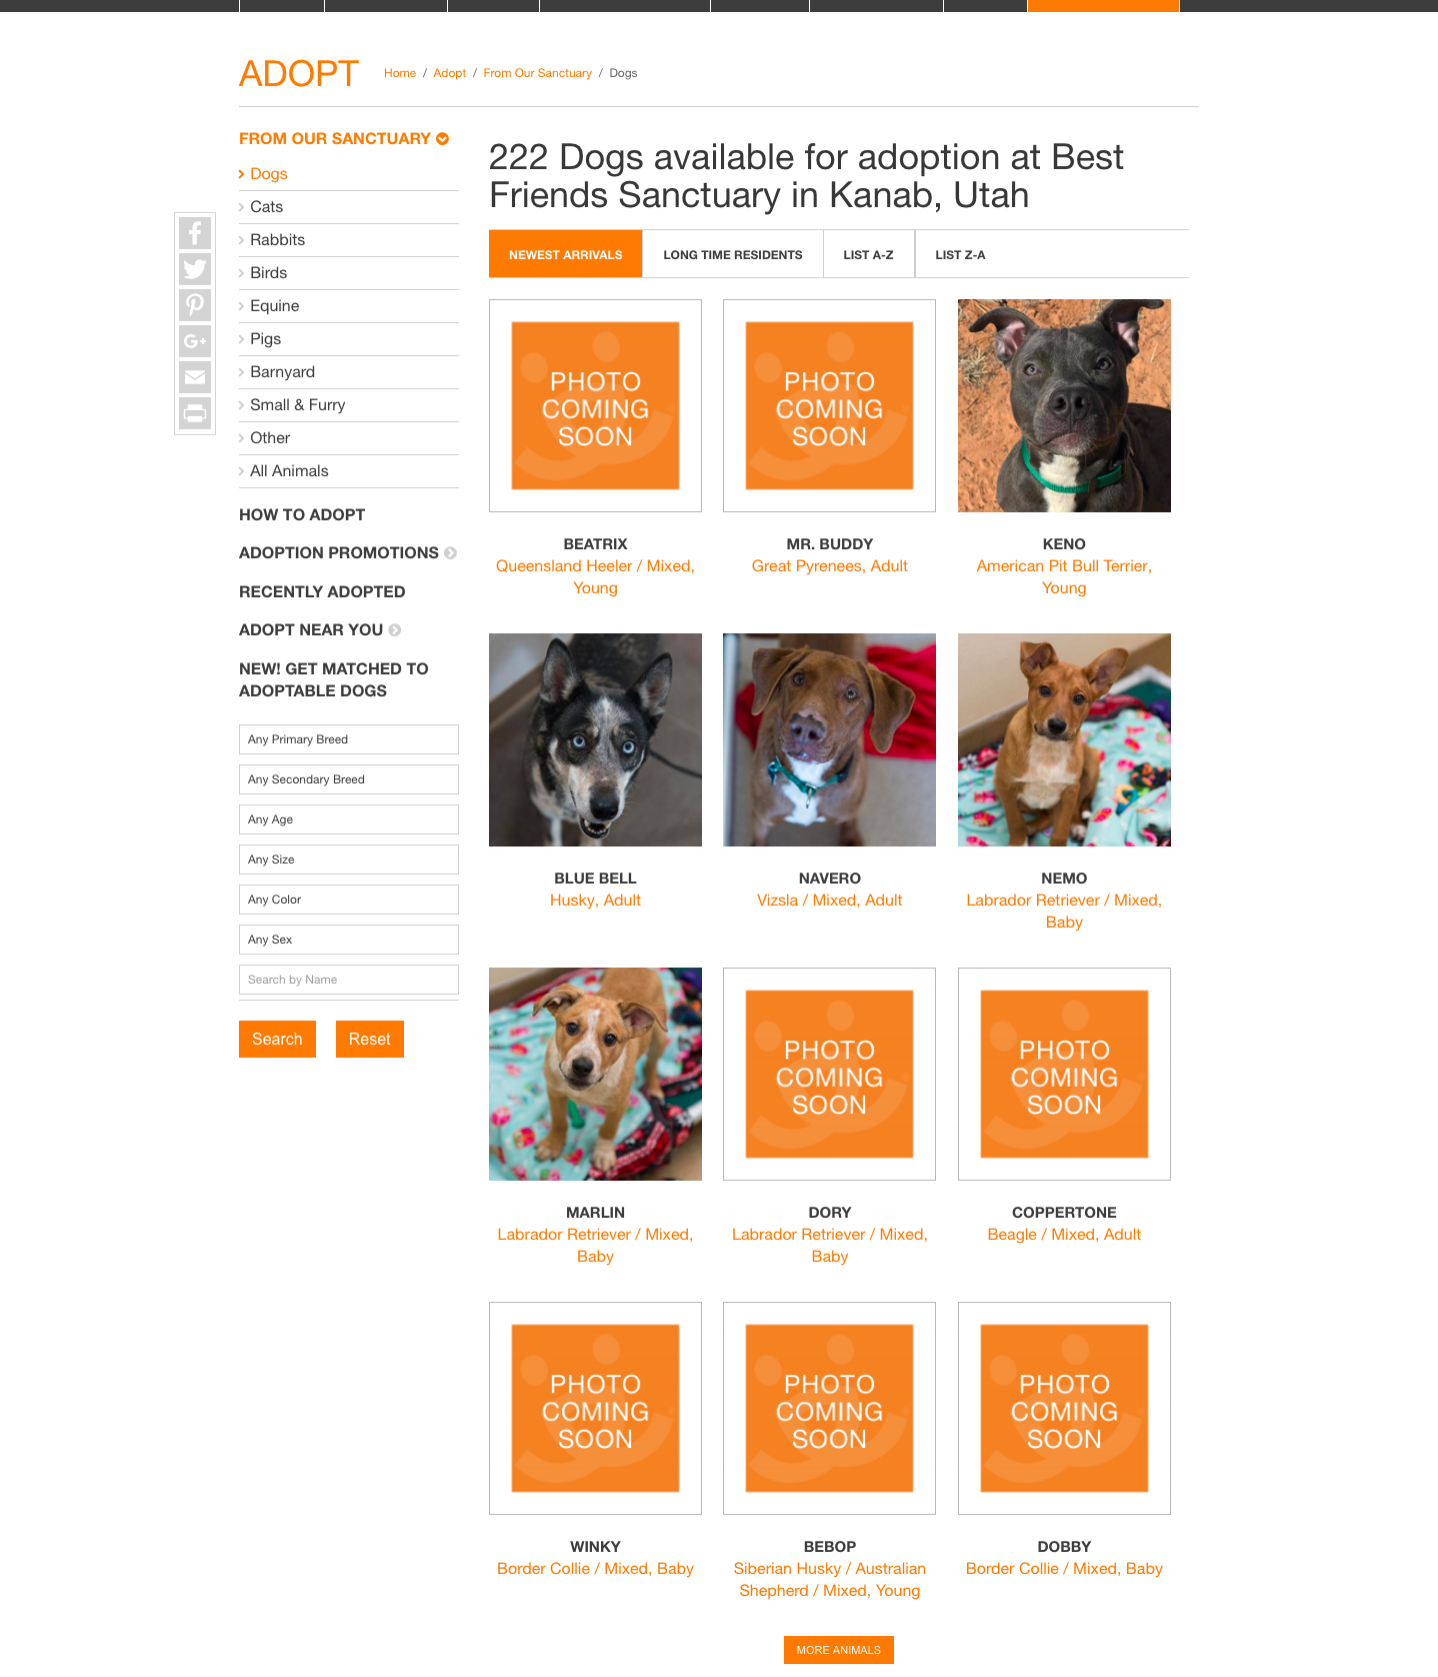 screencapture-bestfriends-org-adopt-adopt-our-sanctuary-dogs-2018-03-16-13_41_51.png